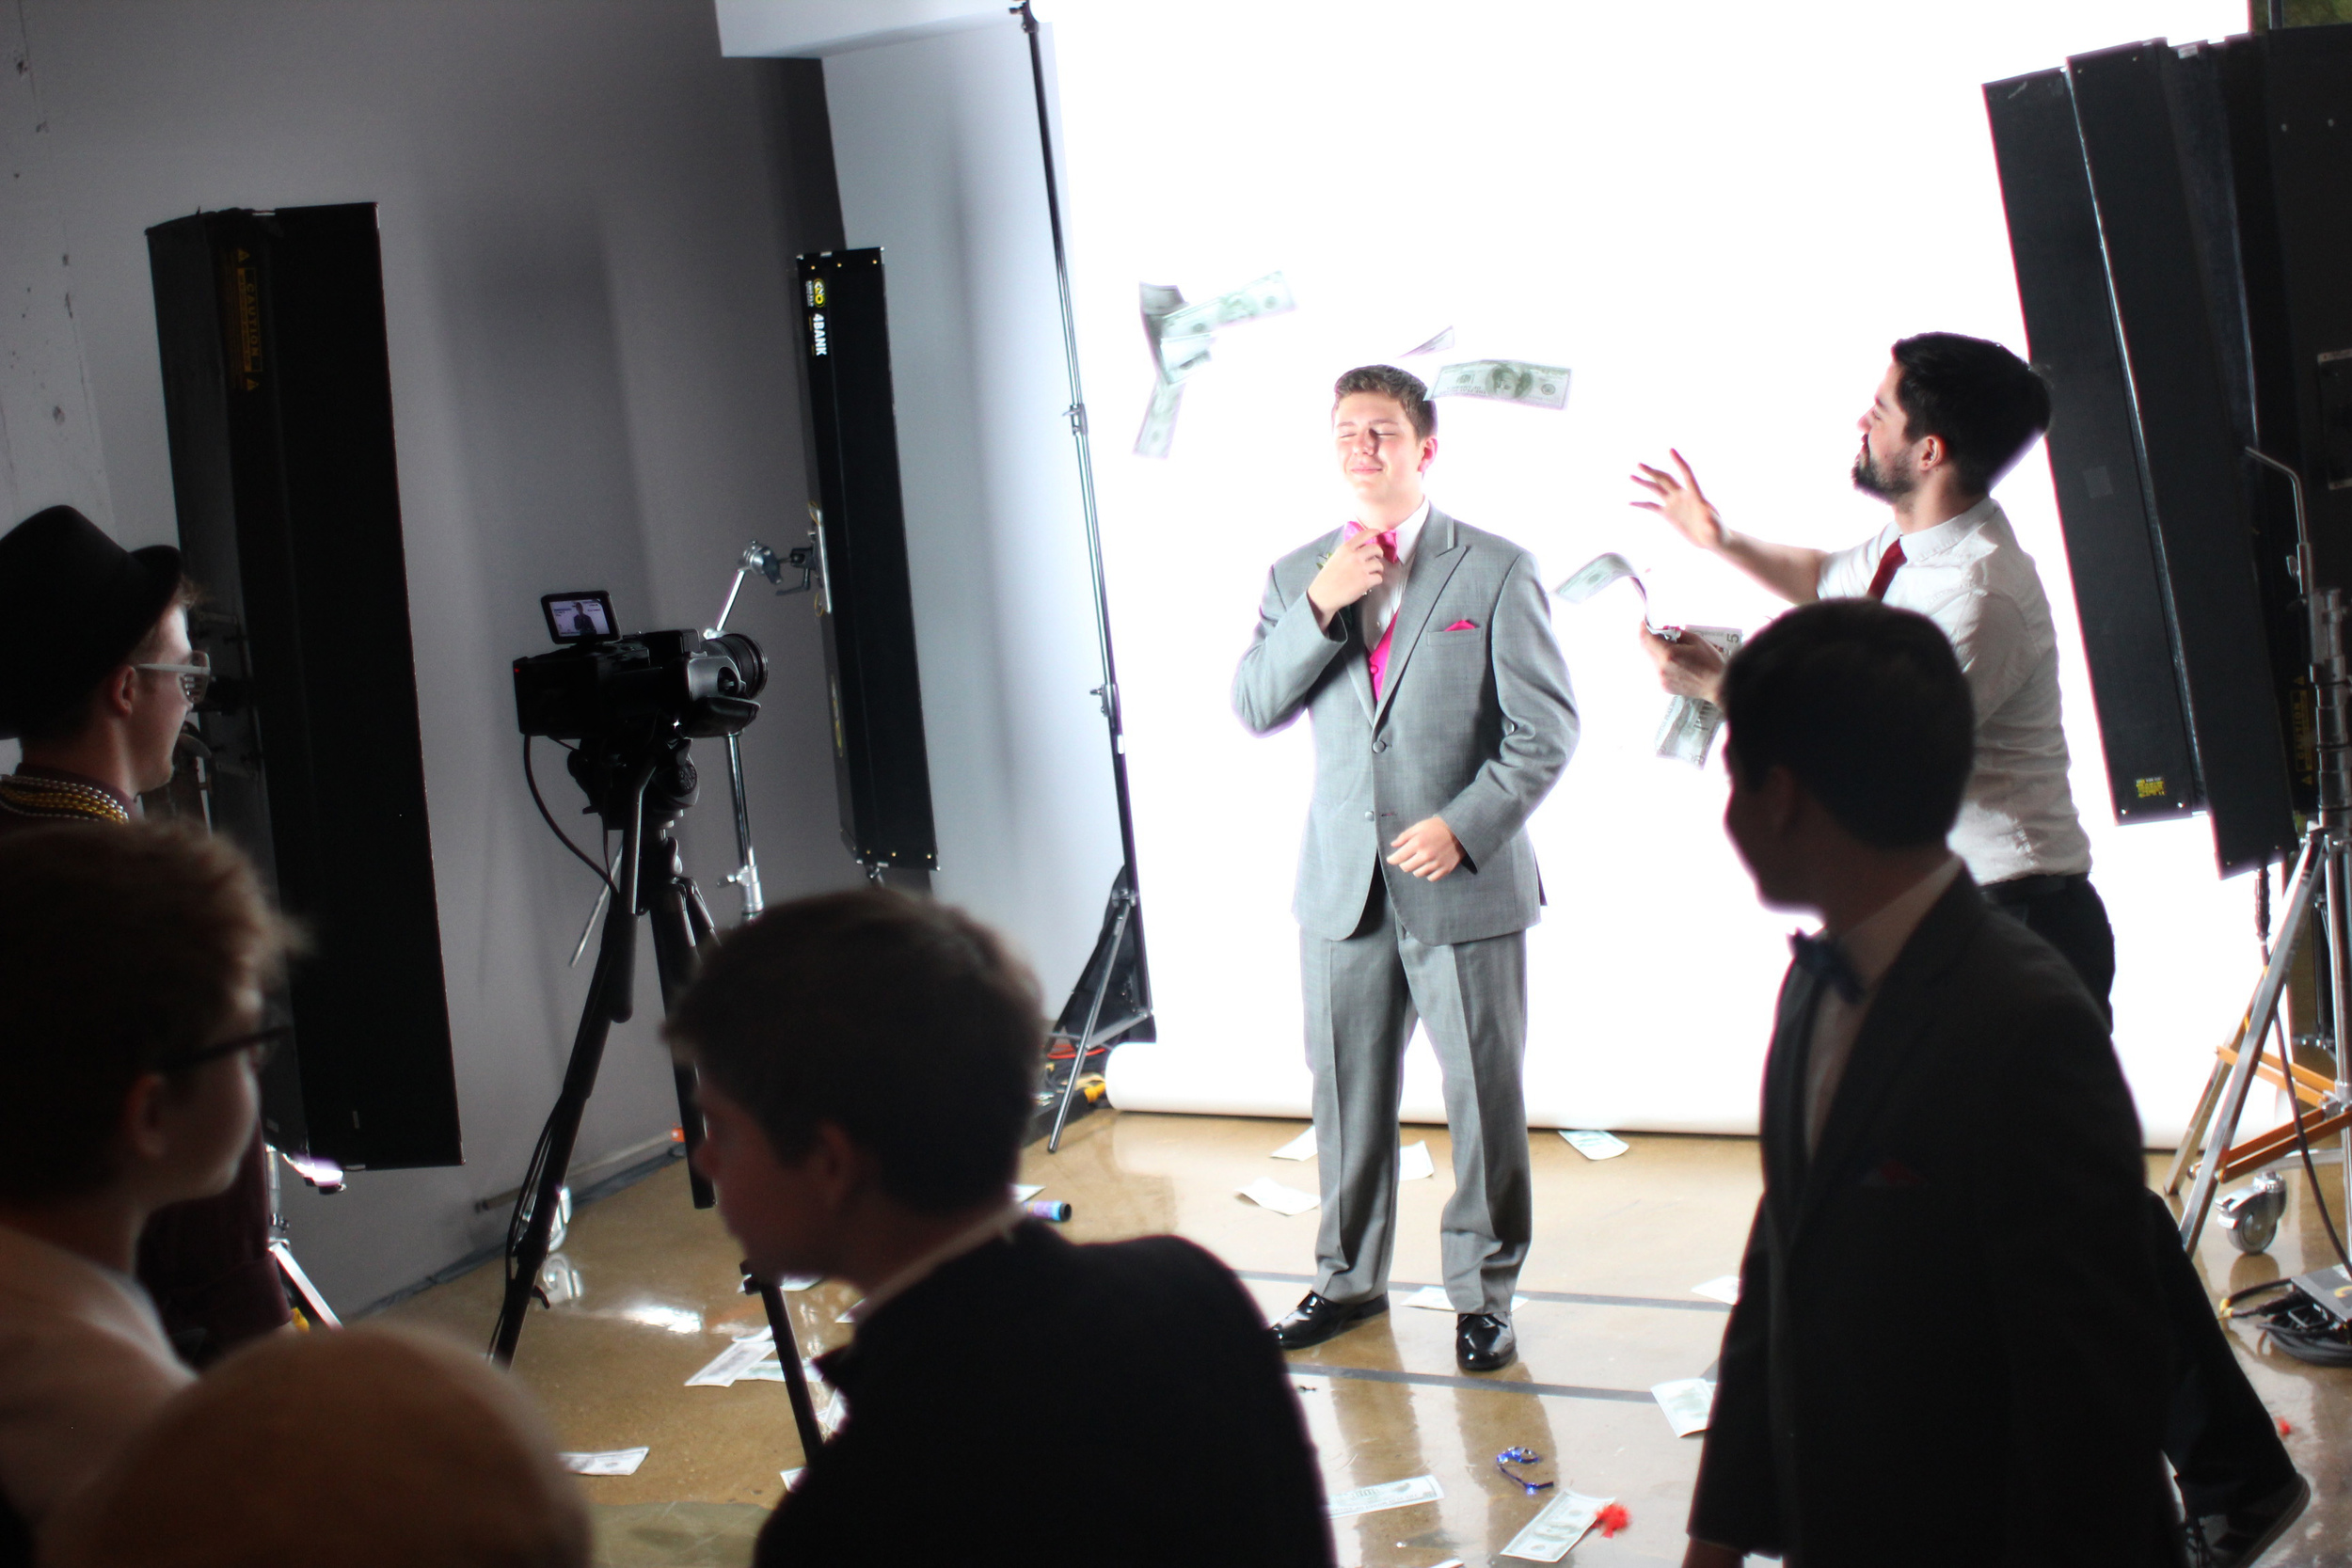 Ryan having fun in the Slow Mo Booth at Venue One! Slow Mo booth by  Ben Mahoney Productions .